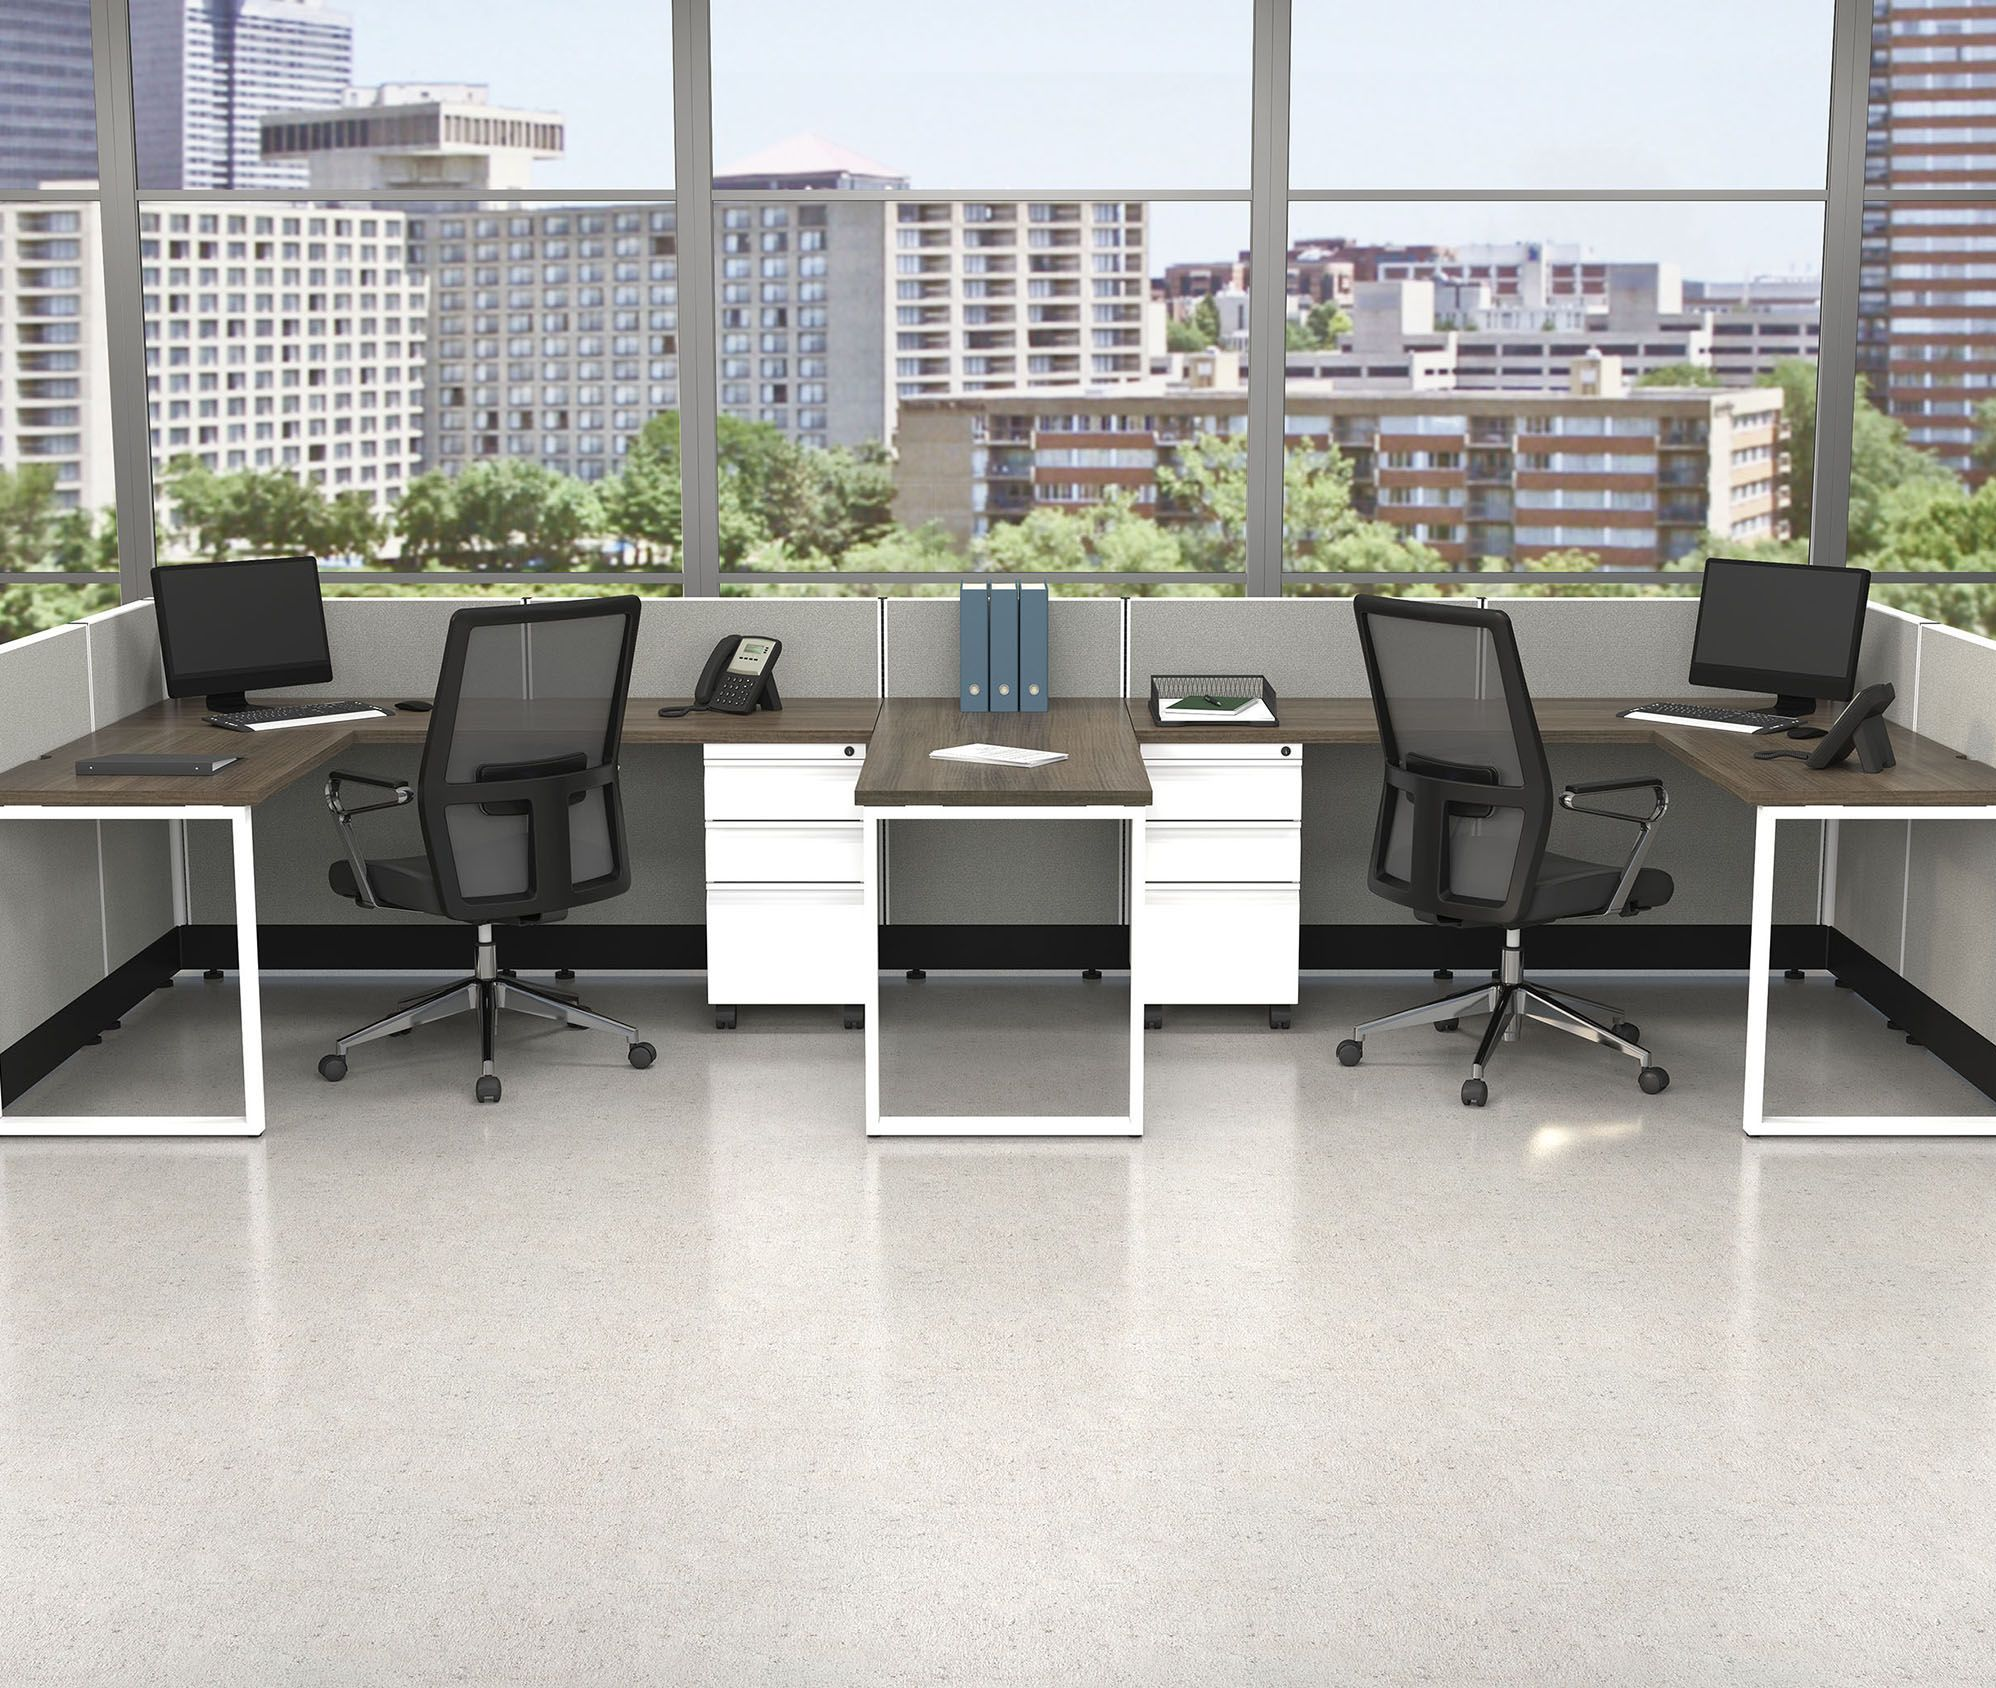 Low Partition Walls Create An Open Feel For An Open